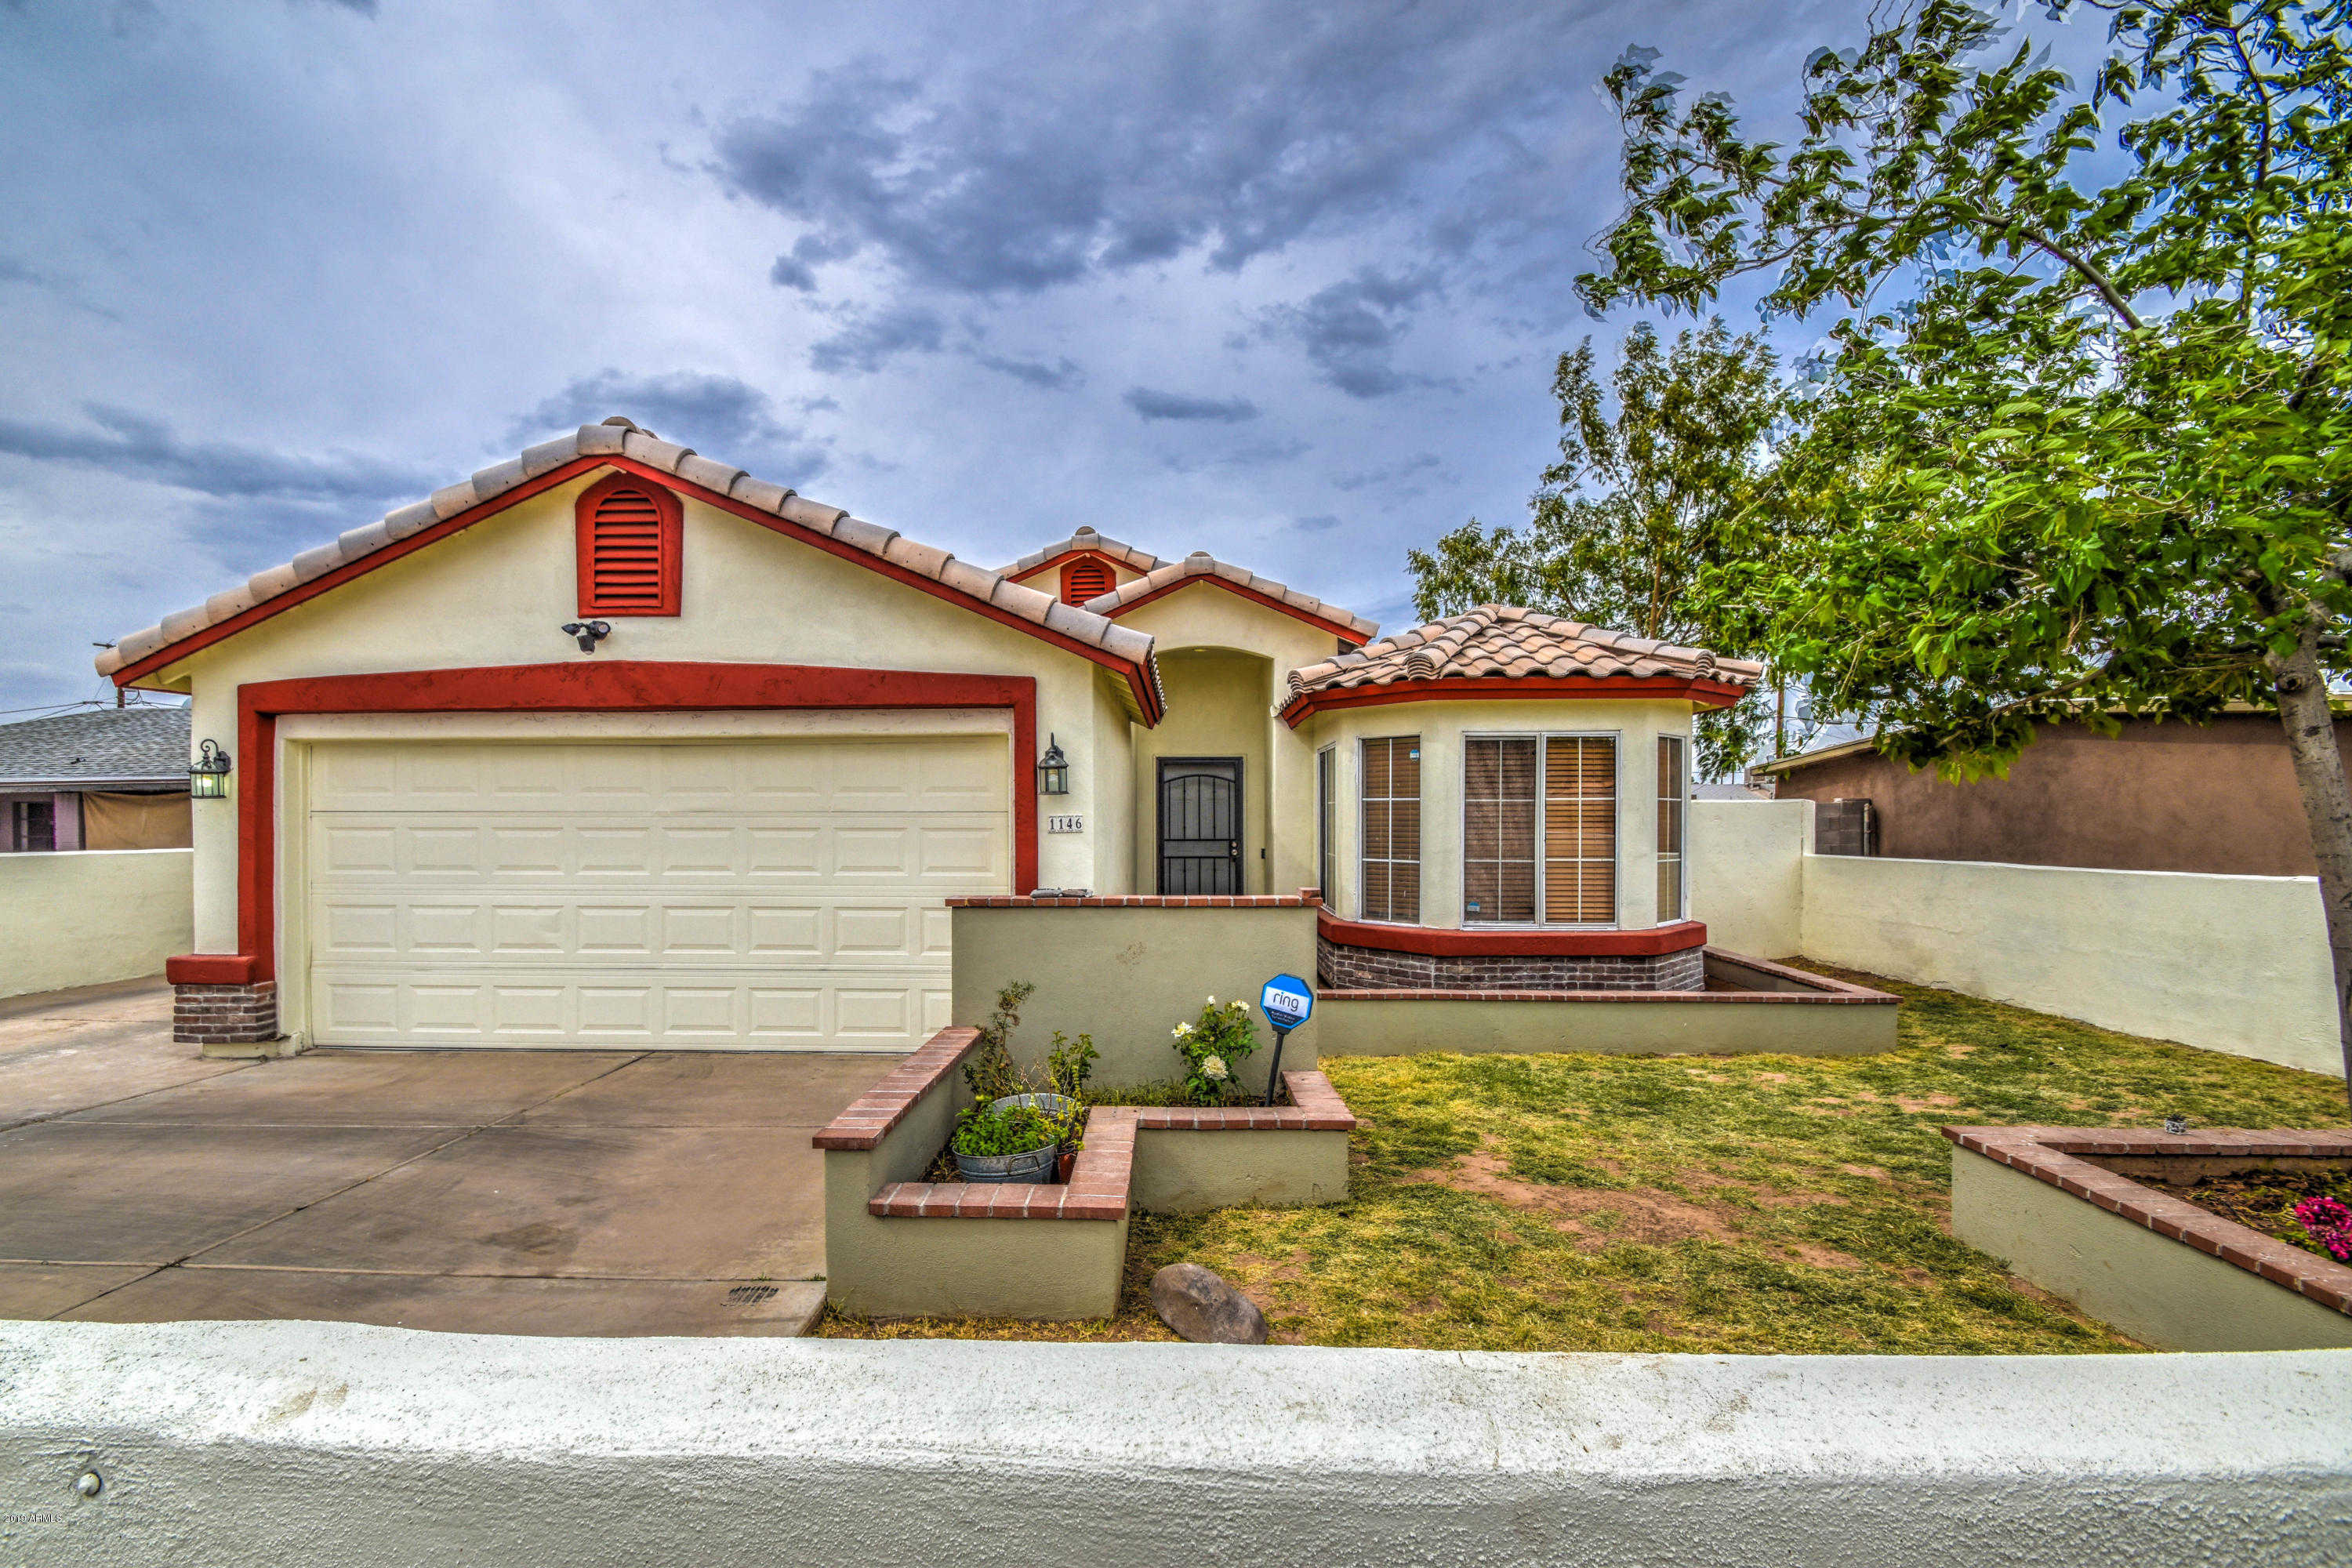 $200,000 - 3Br/2Ba - Home for Sale in Highland Park Sub Plat 1, Phoenix